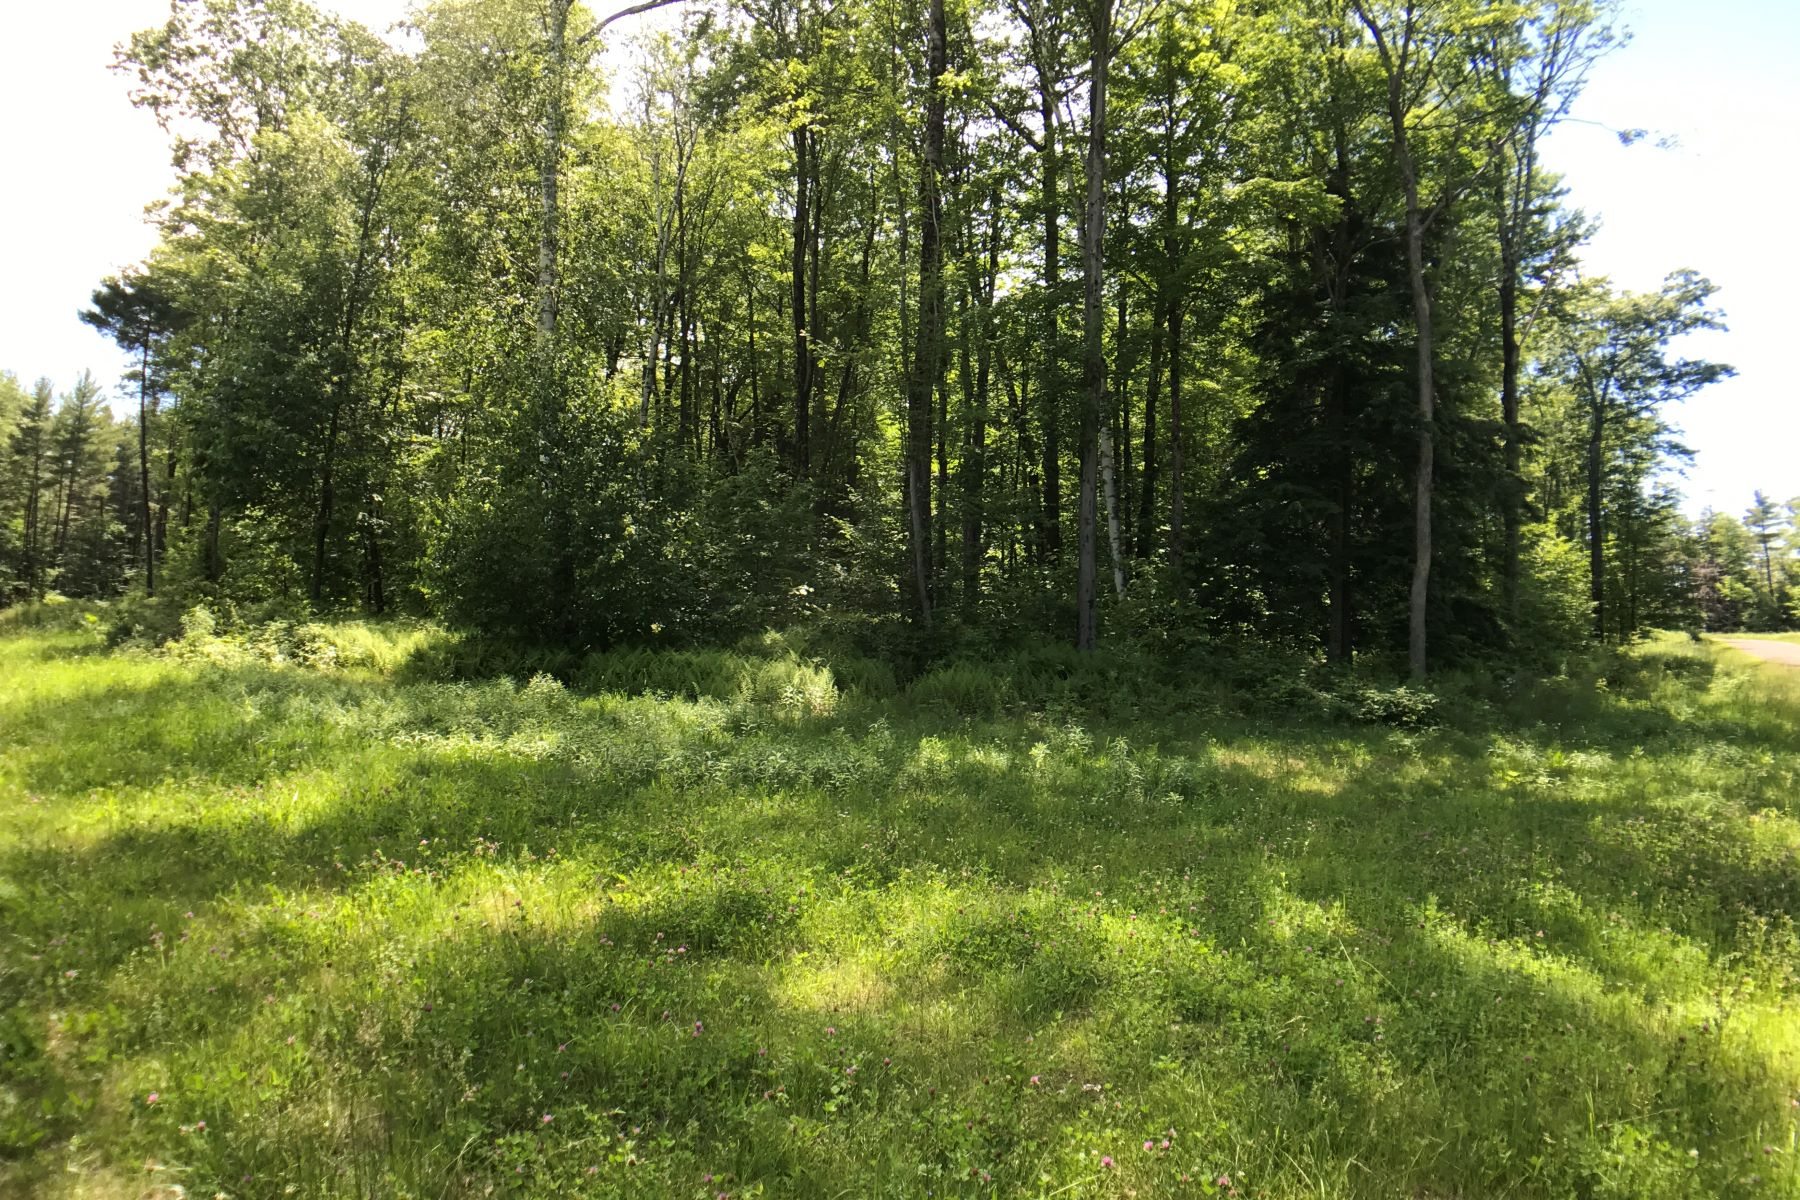 Land for Sale at Affordable Ready-to-Build Parcel with Shared Waterfront Access Lot #2, Moose Dr Lee, Massachusetts 01238 United States